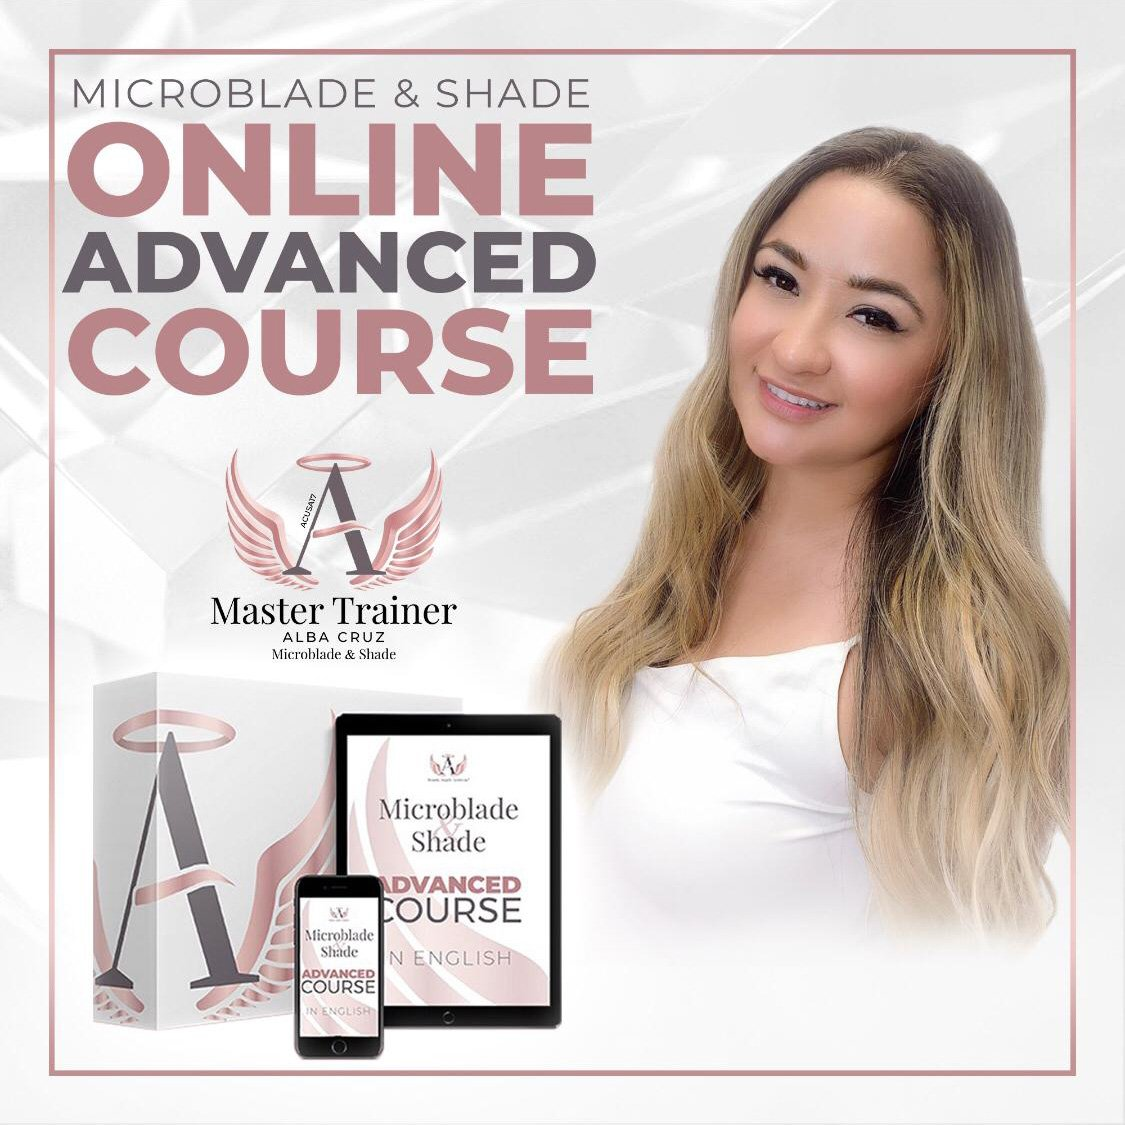 the brow artist dallas offers online microblading training course